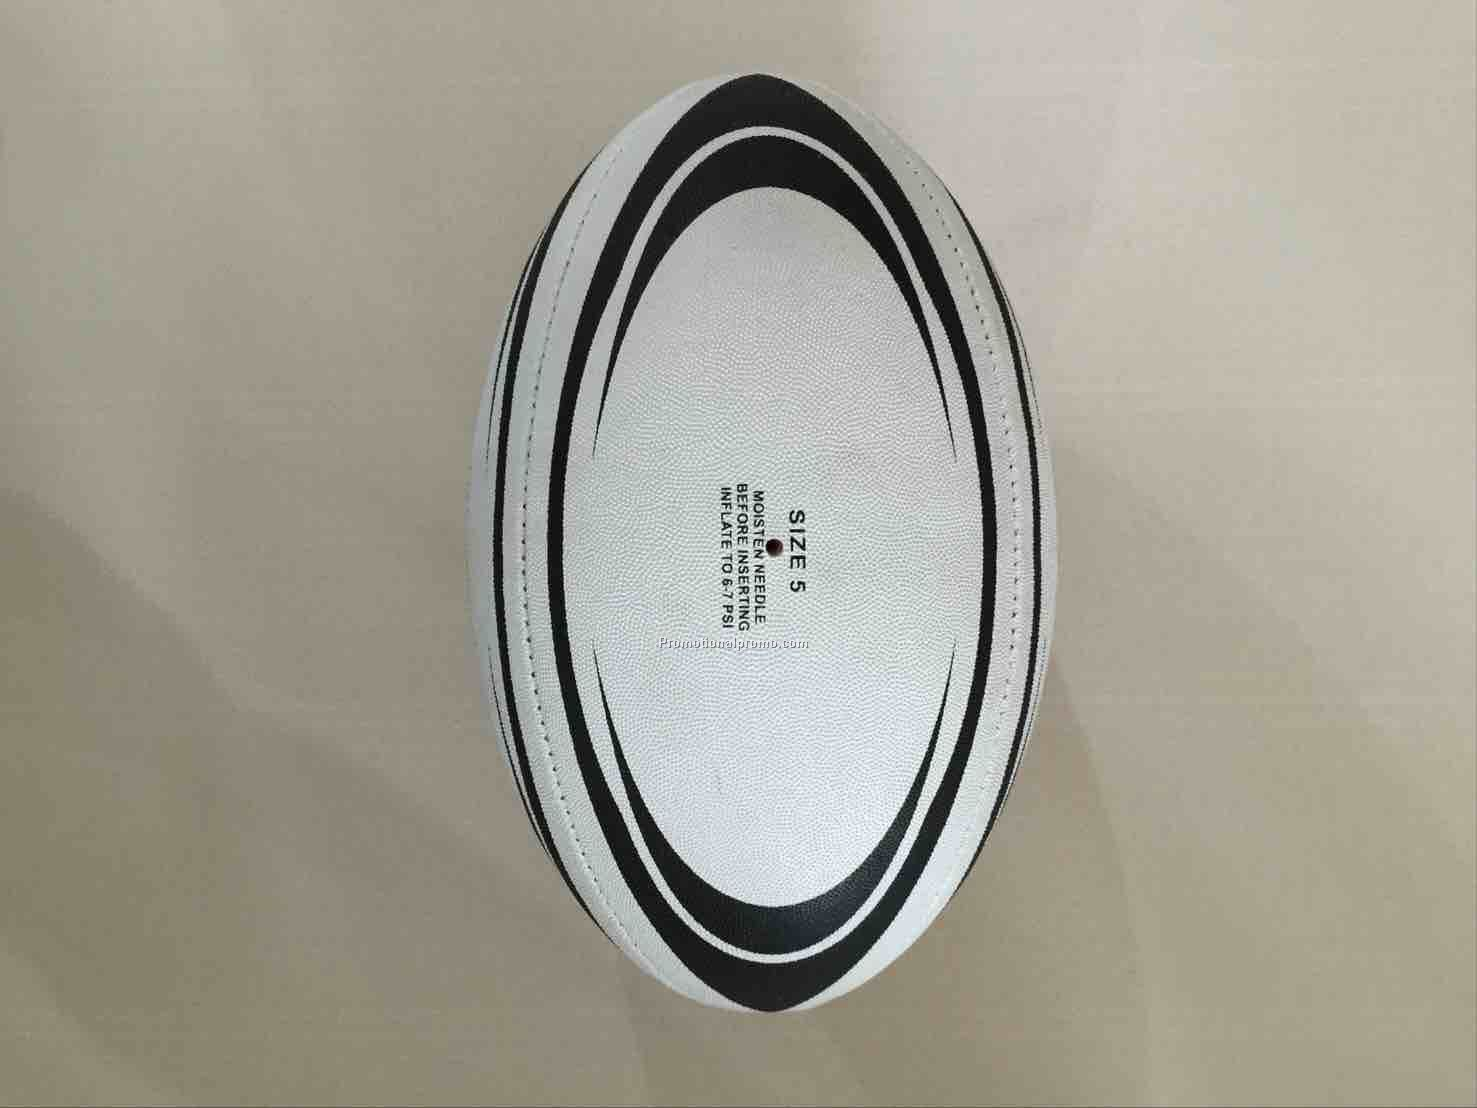 Rubber surface Rugby balls